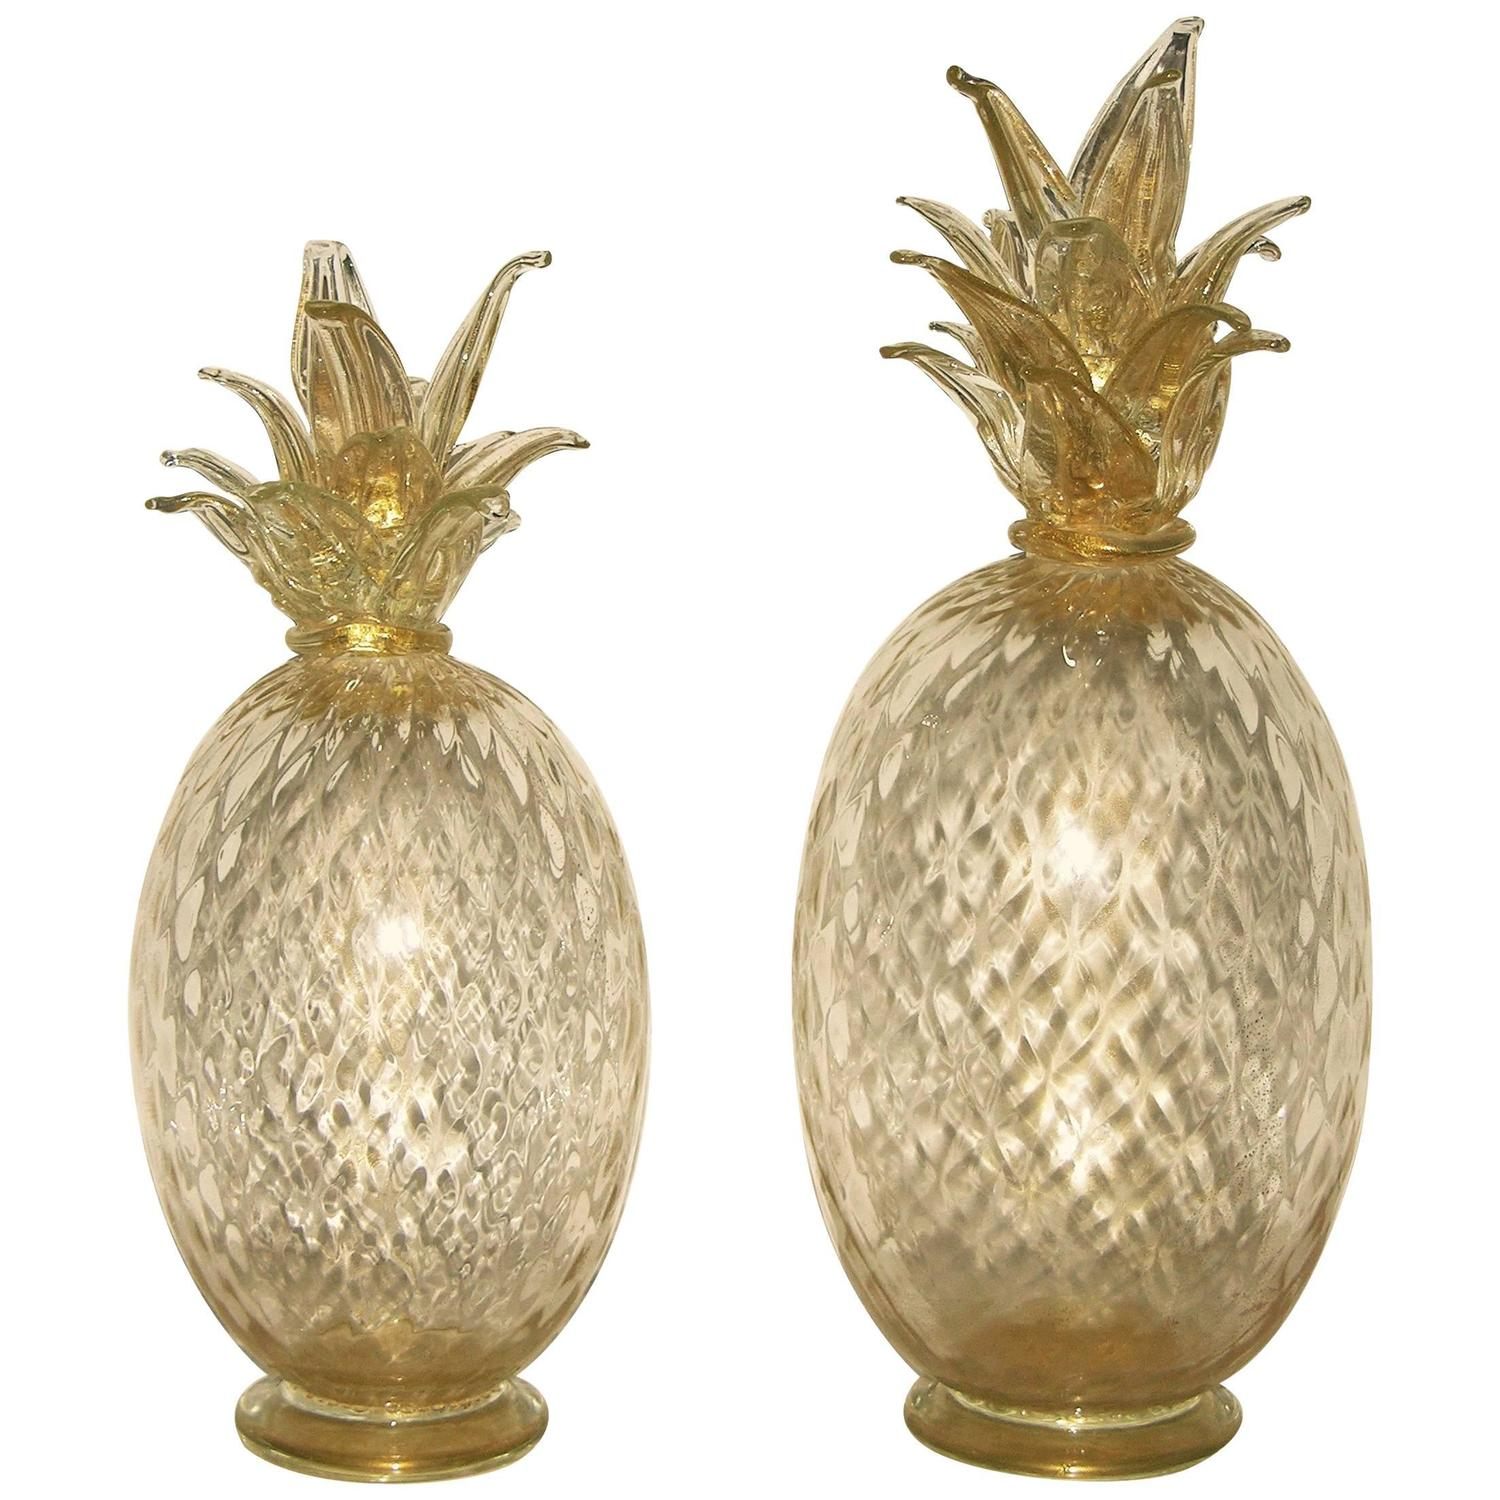 Seguso italian scaled set of two gold pineapples in blown